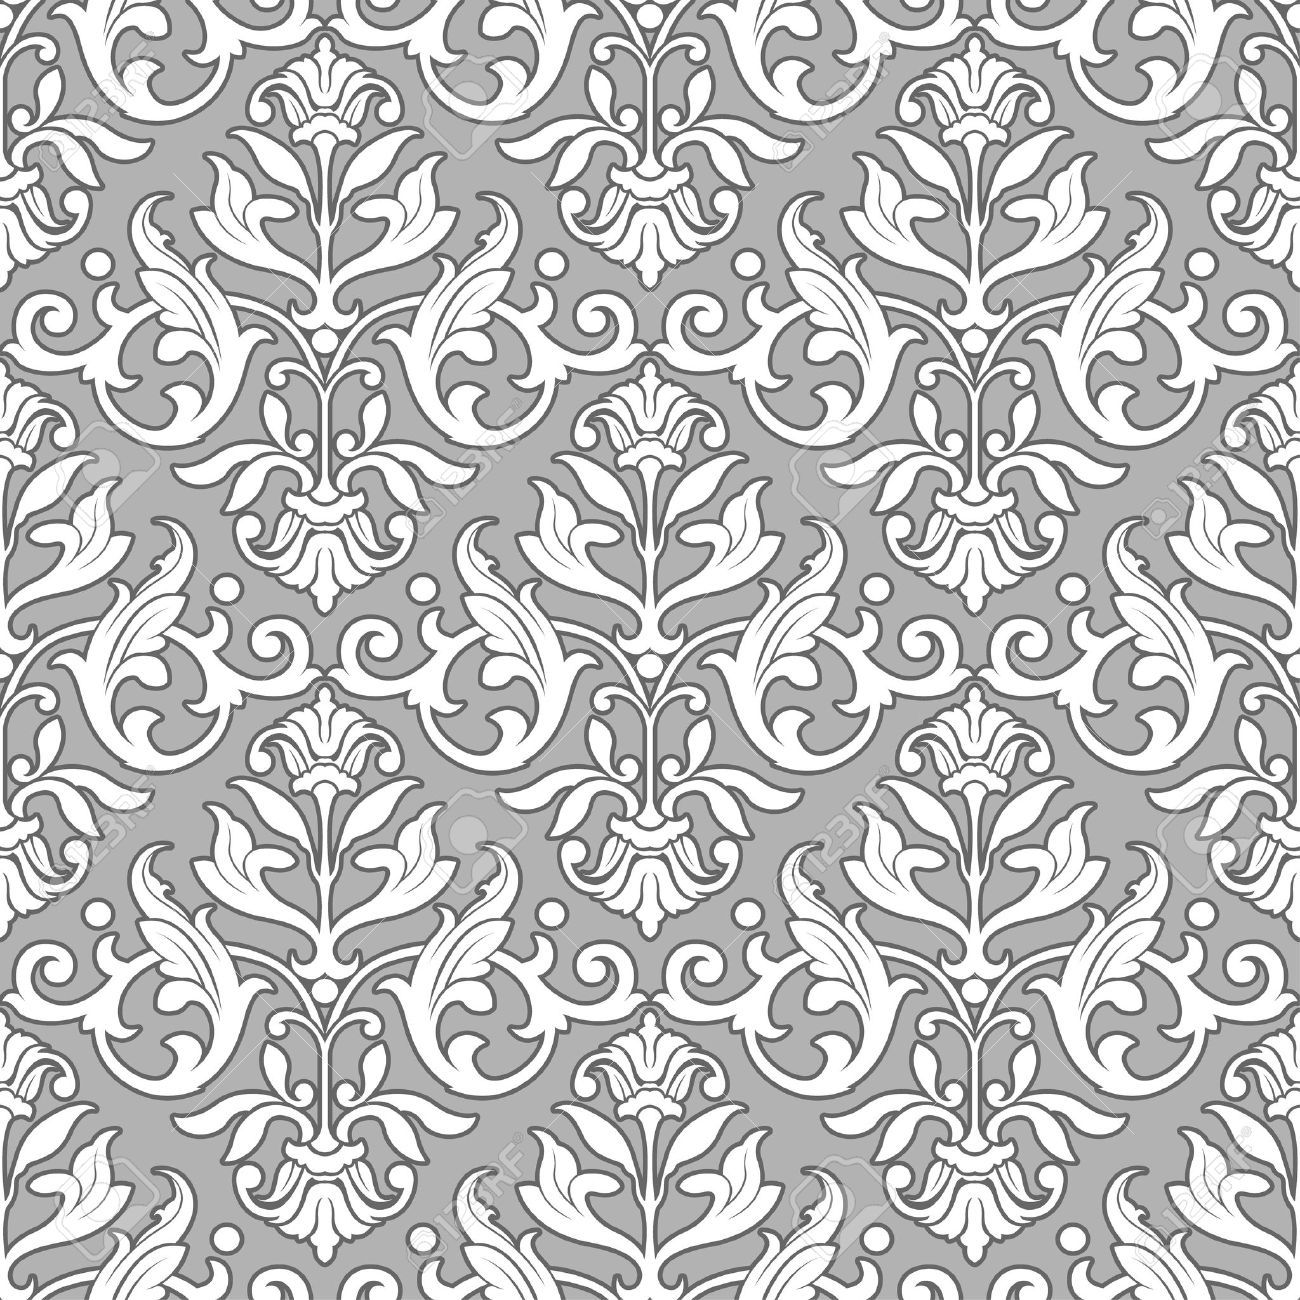 5931334 seamless classic pattern stock vector pattern. Black Bedroom Furniture Sets. Home Design Ideas